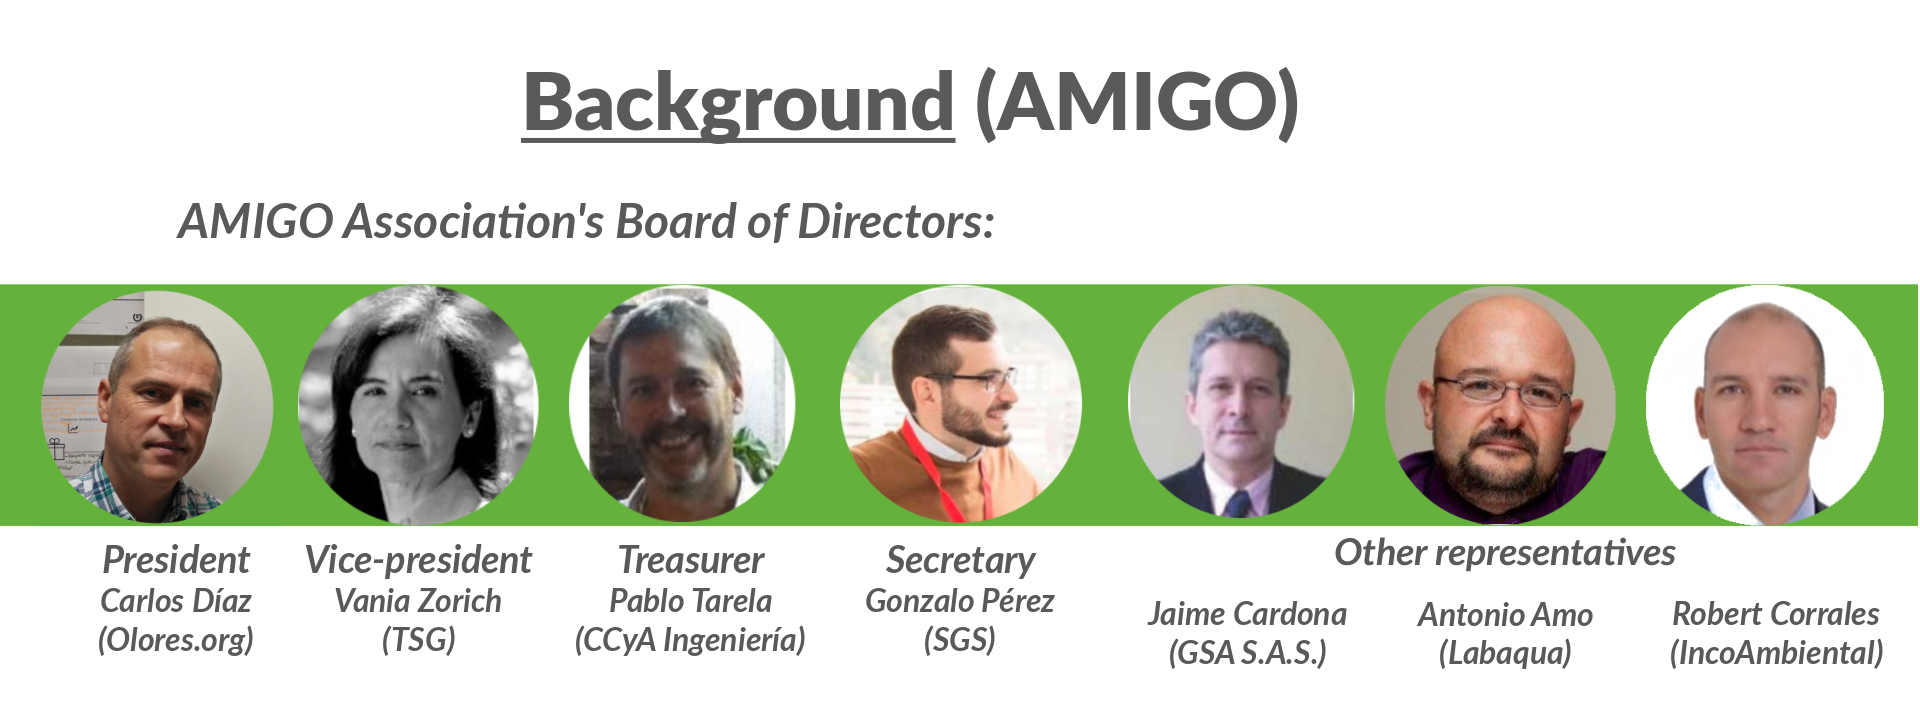 AMIGO board of directors 2018 2